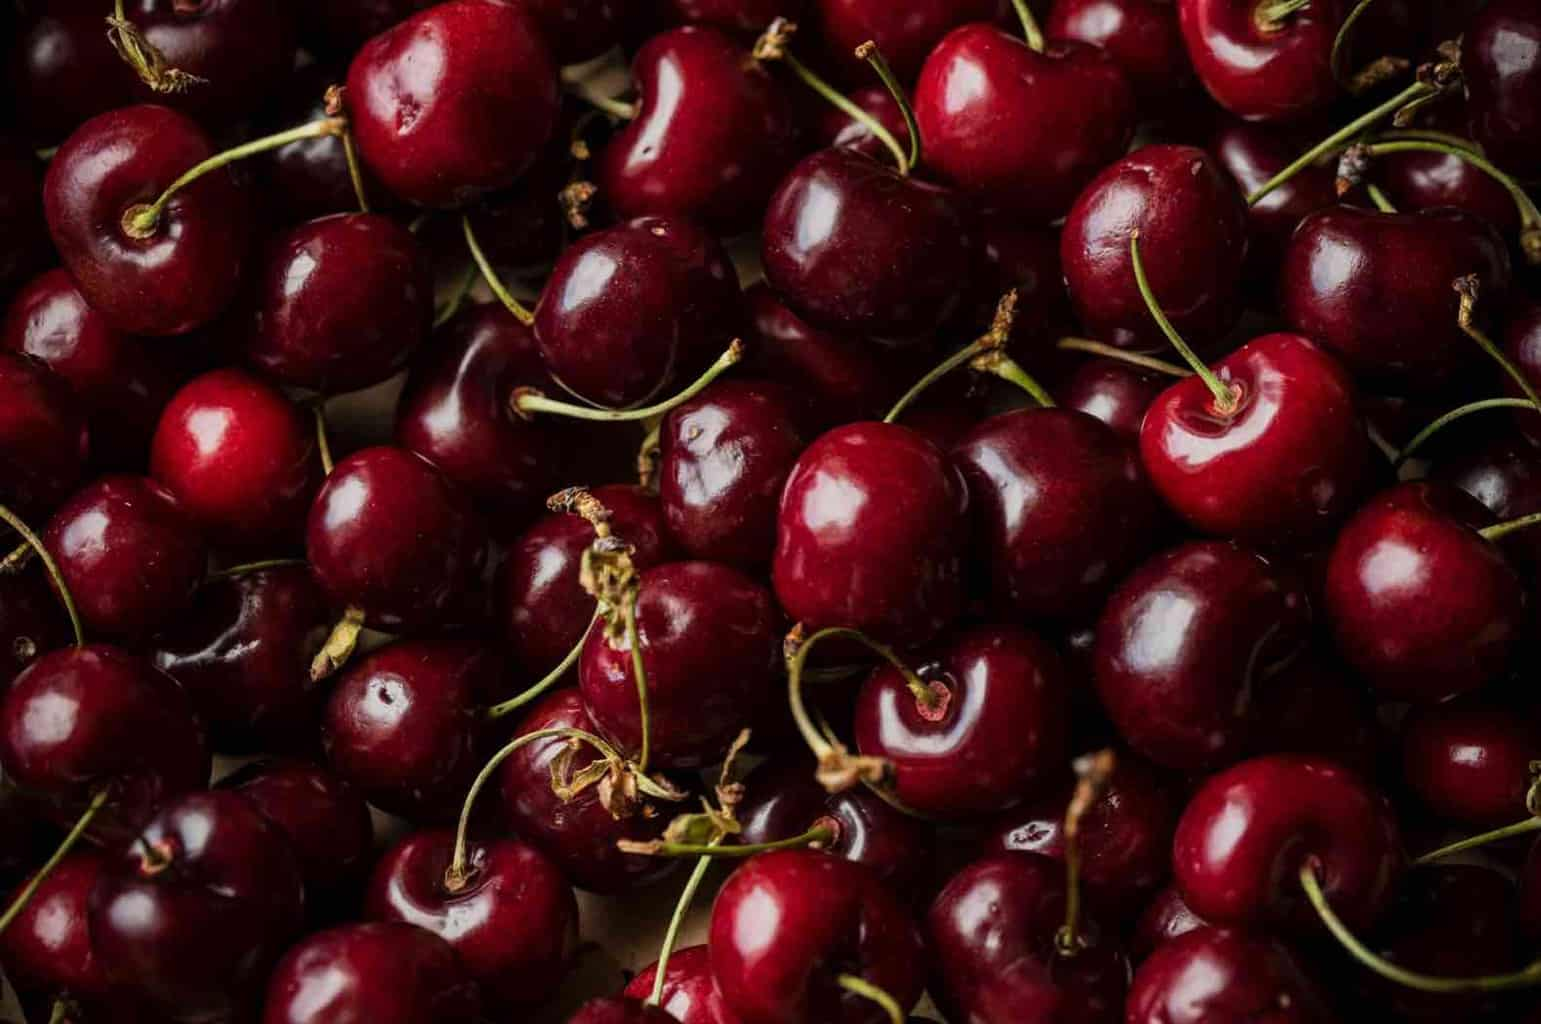 Cherries and Zug